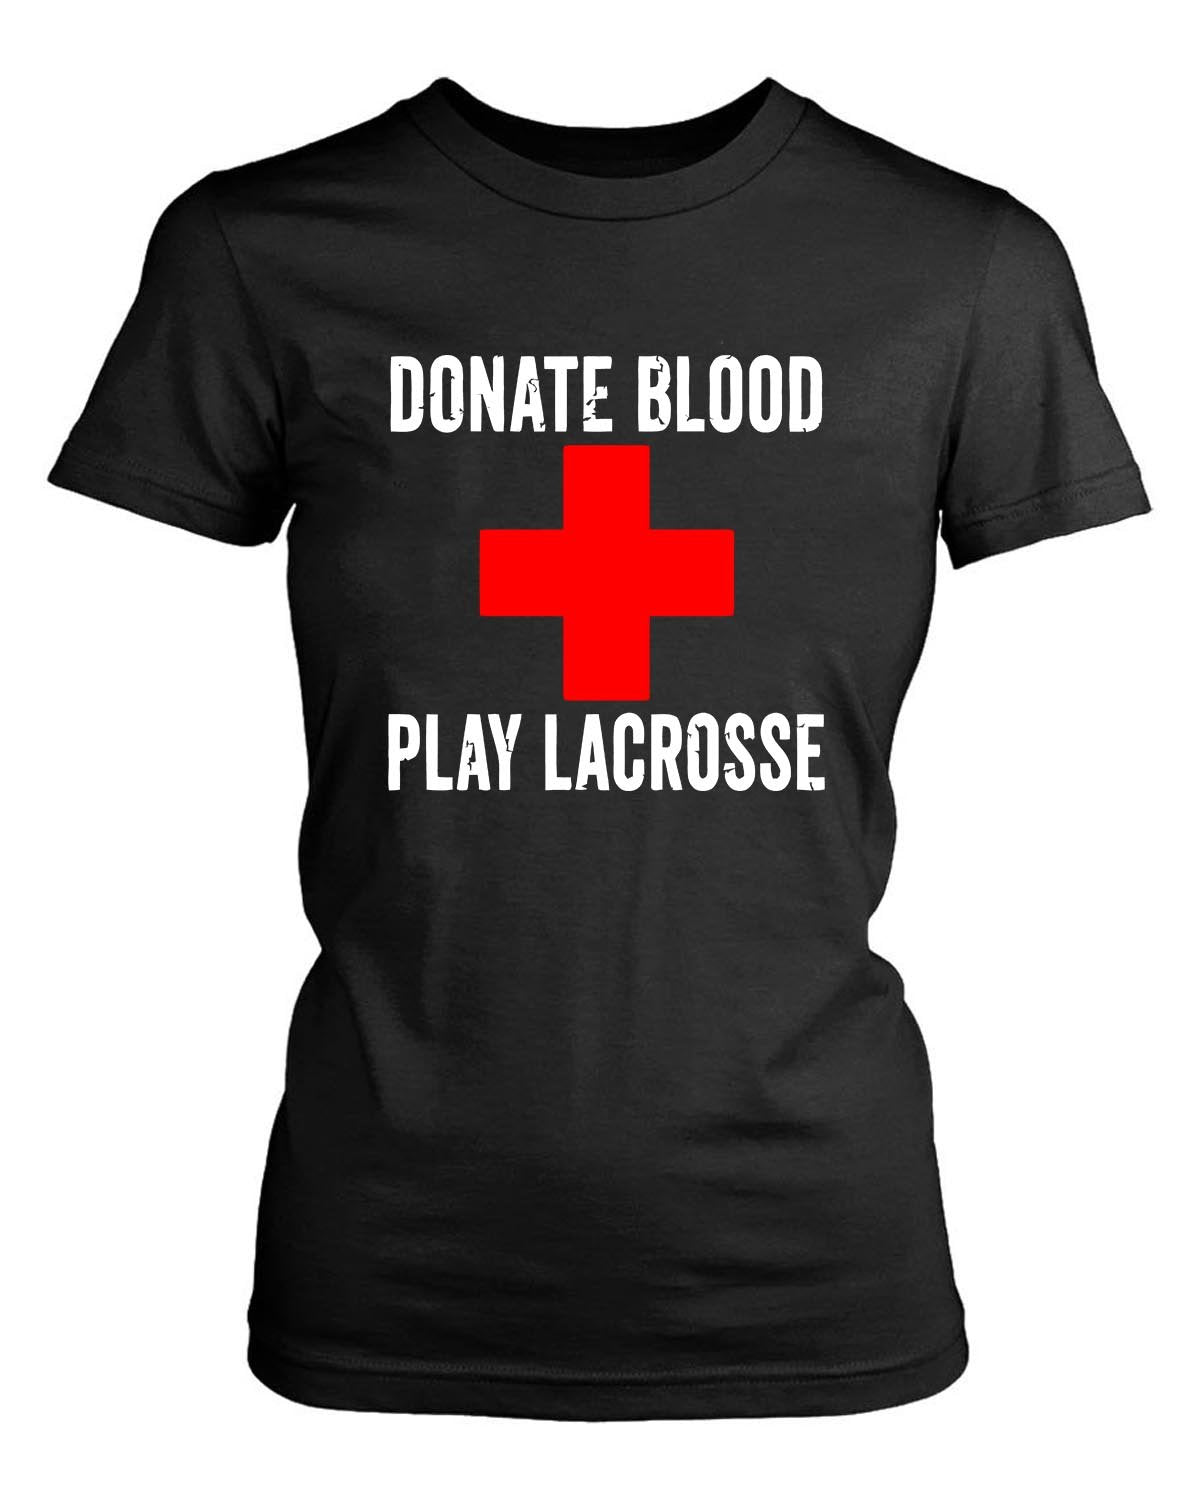 Donate Blood Play Lacrosse Women's T-Shirt - Nuu Shirtz